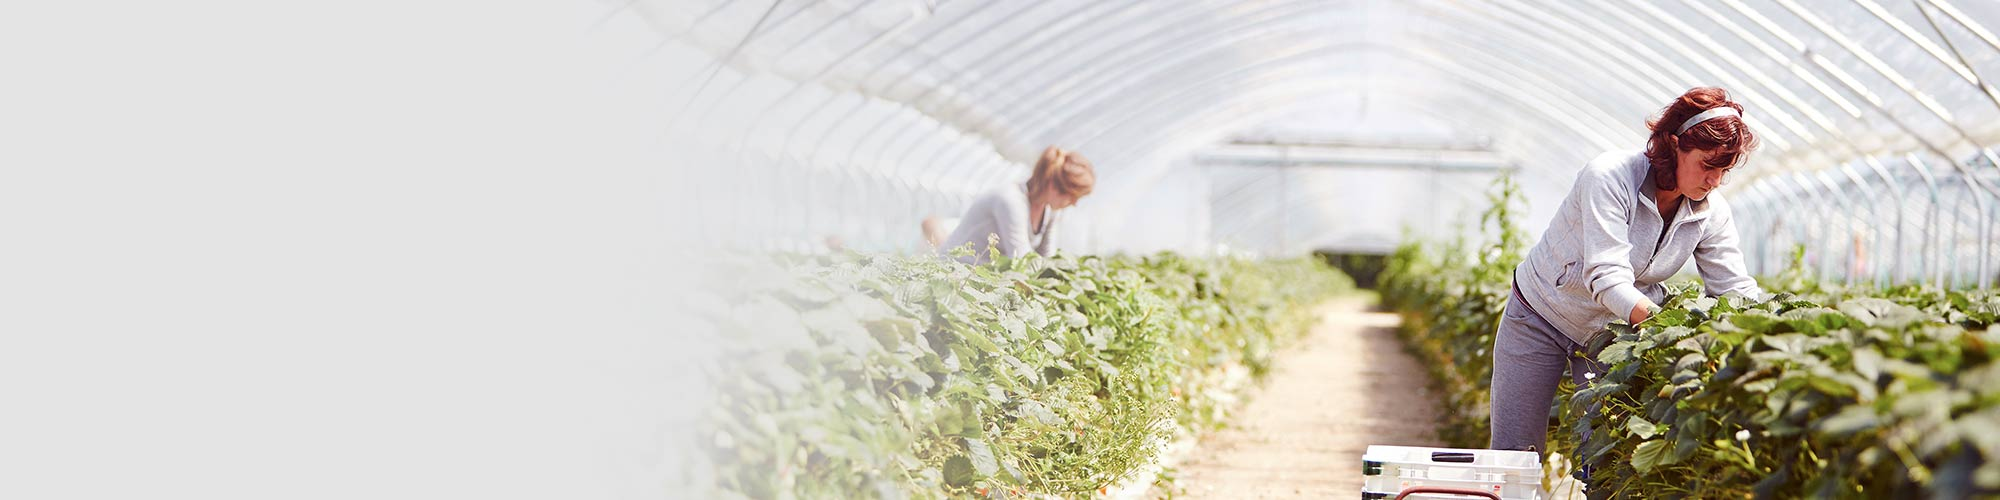 Farm worker harvests crop in large greenhouse